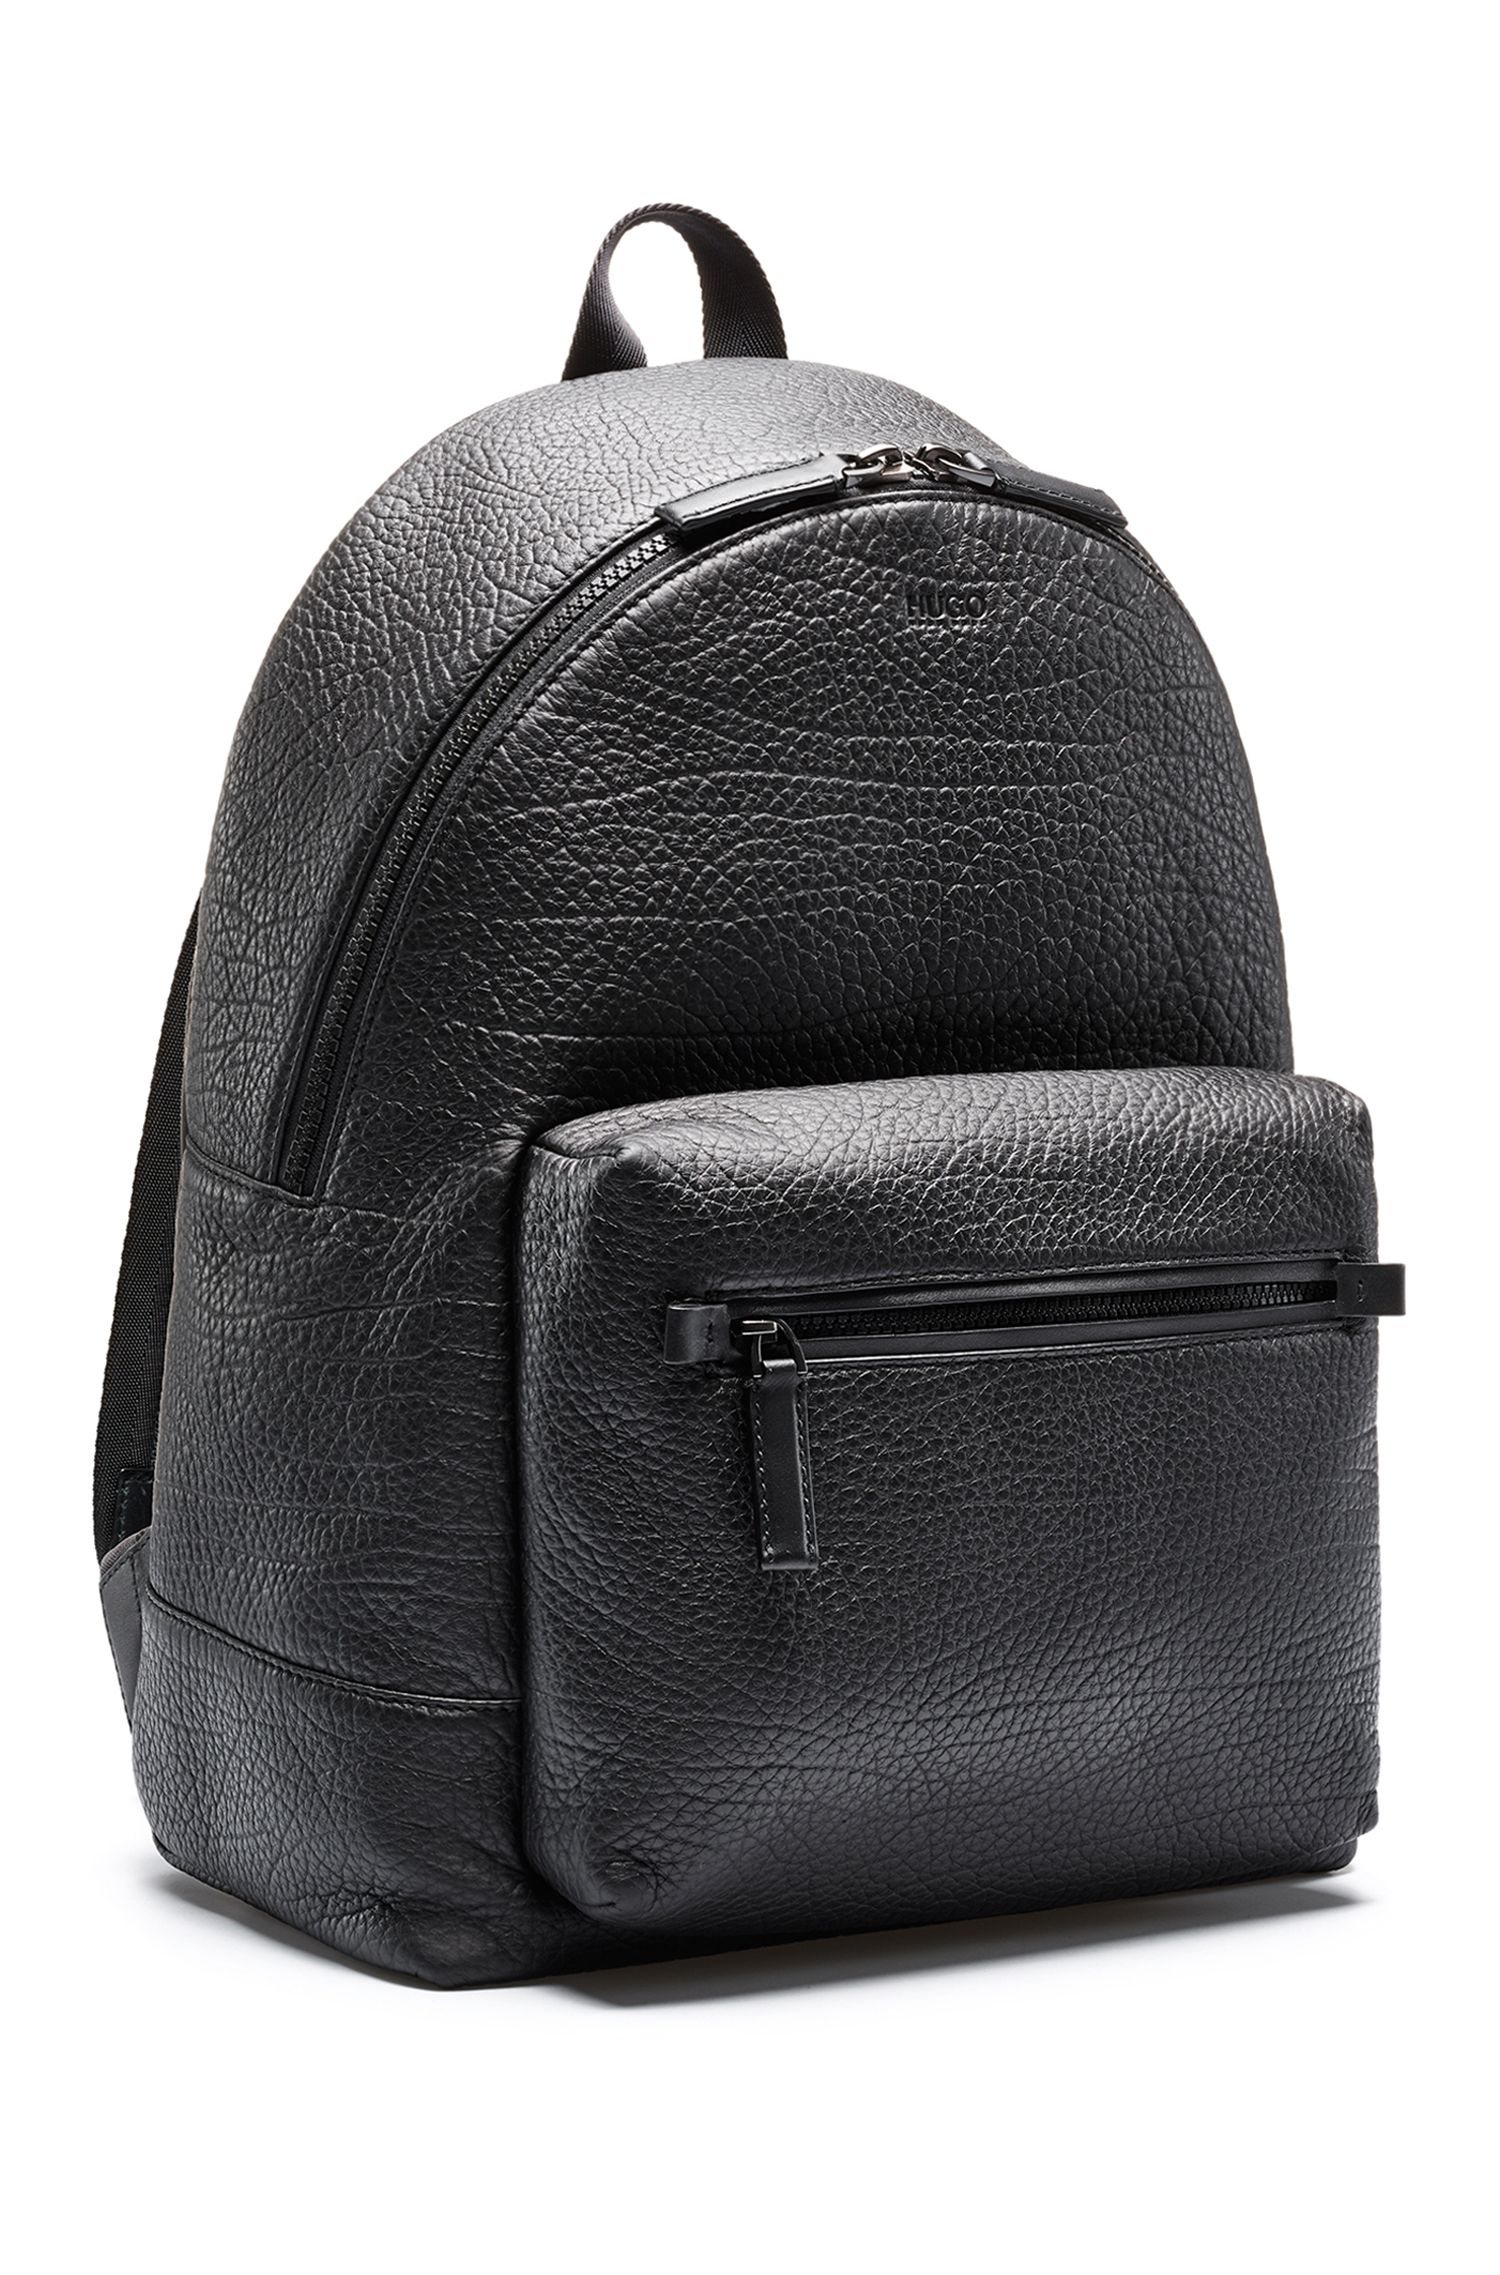 Embossed Italian leather backpack with laptop pocket